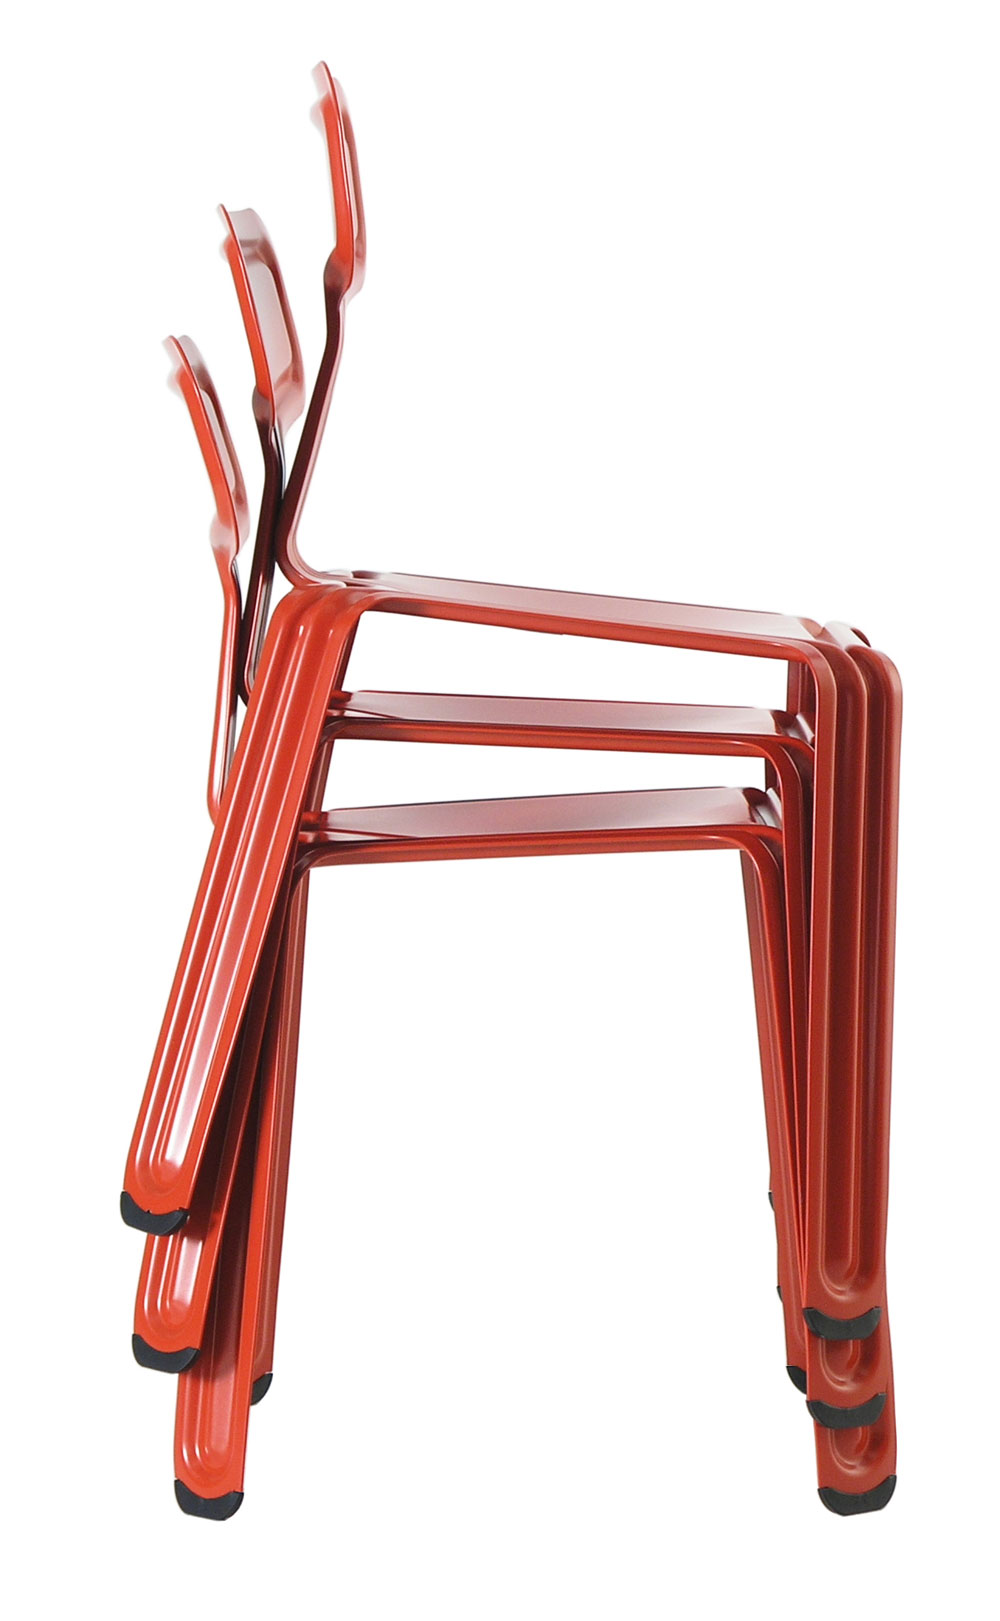 the-tree-mag_pressed-chair-by-harry-thaler_40.jpg